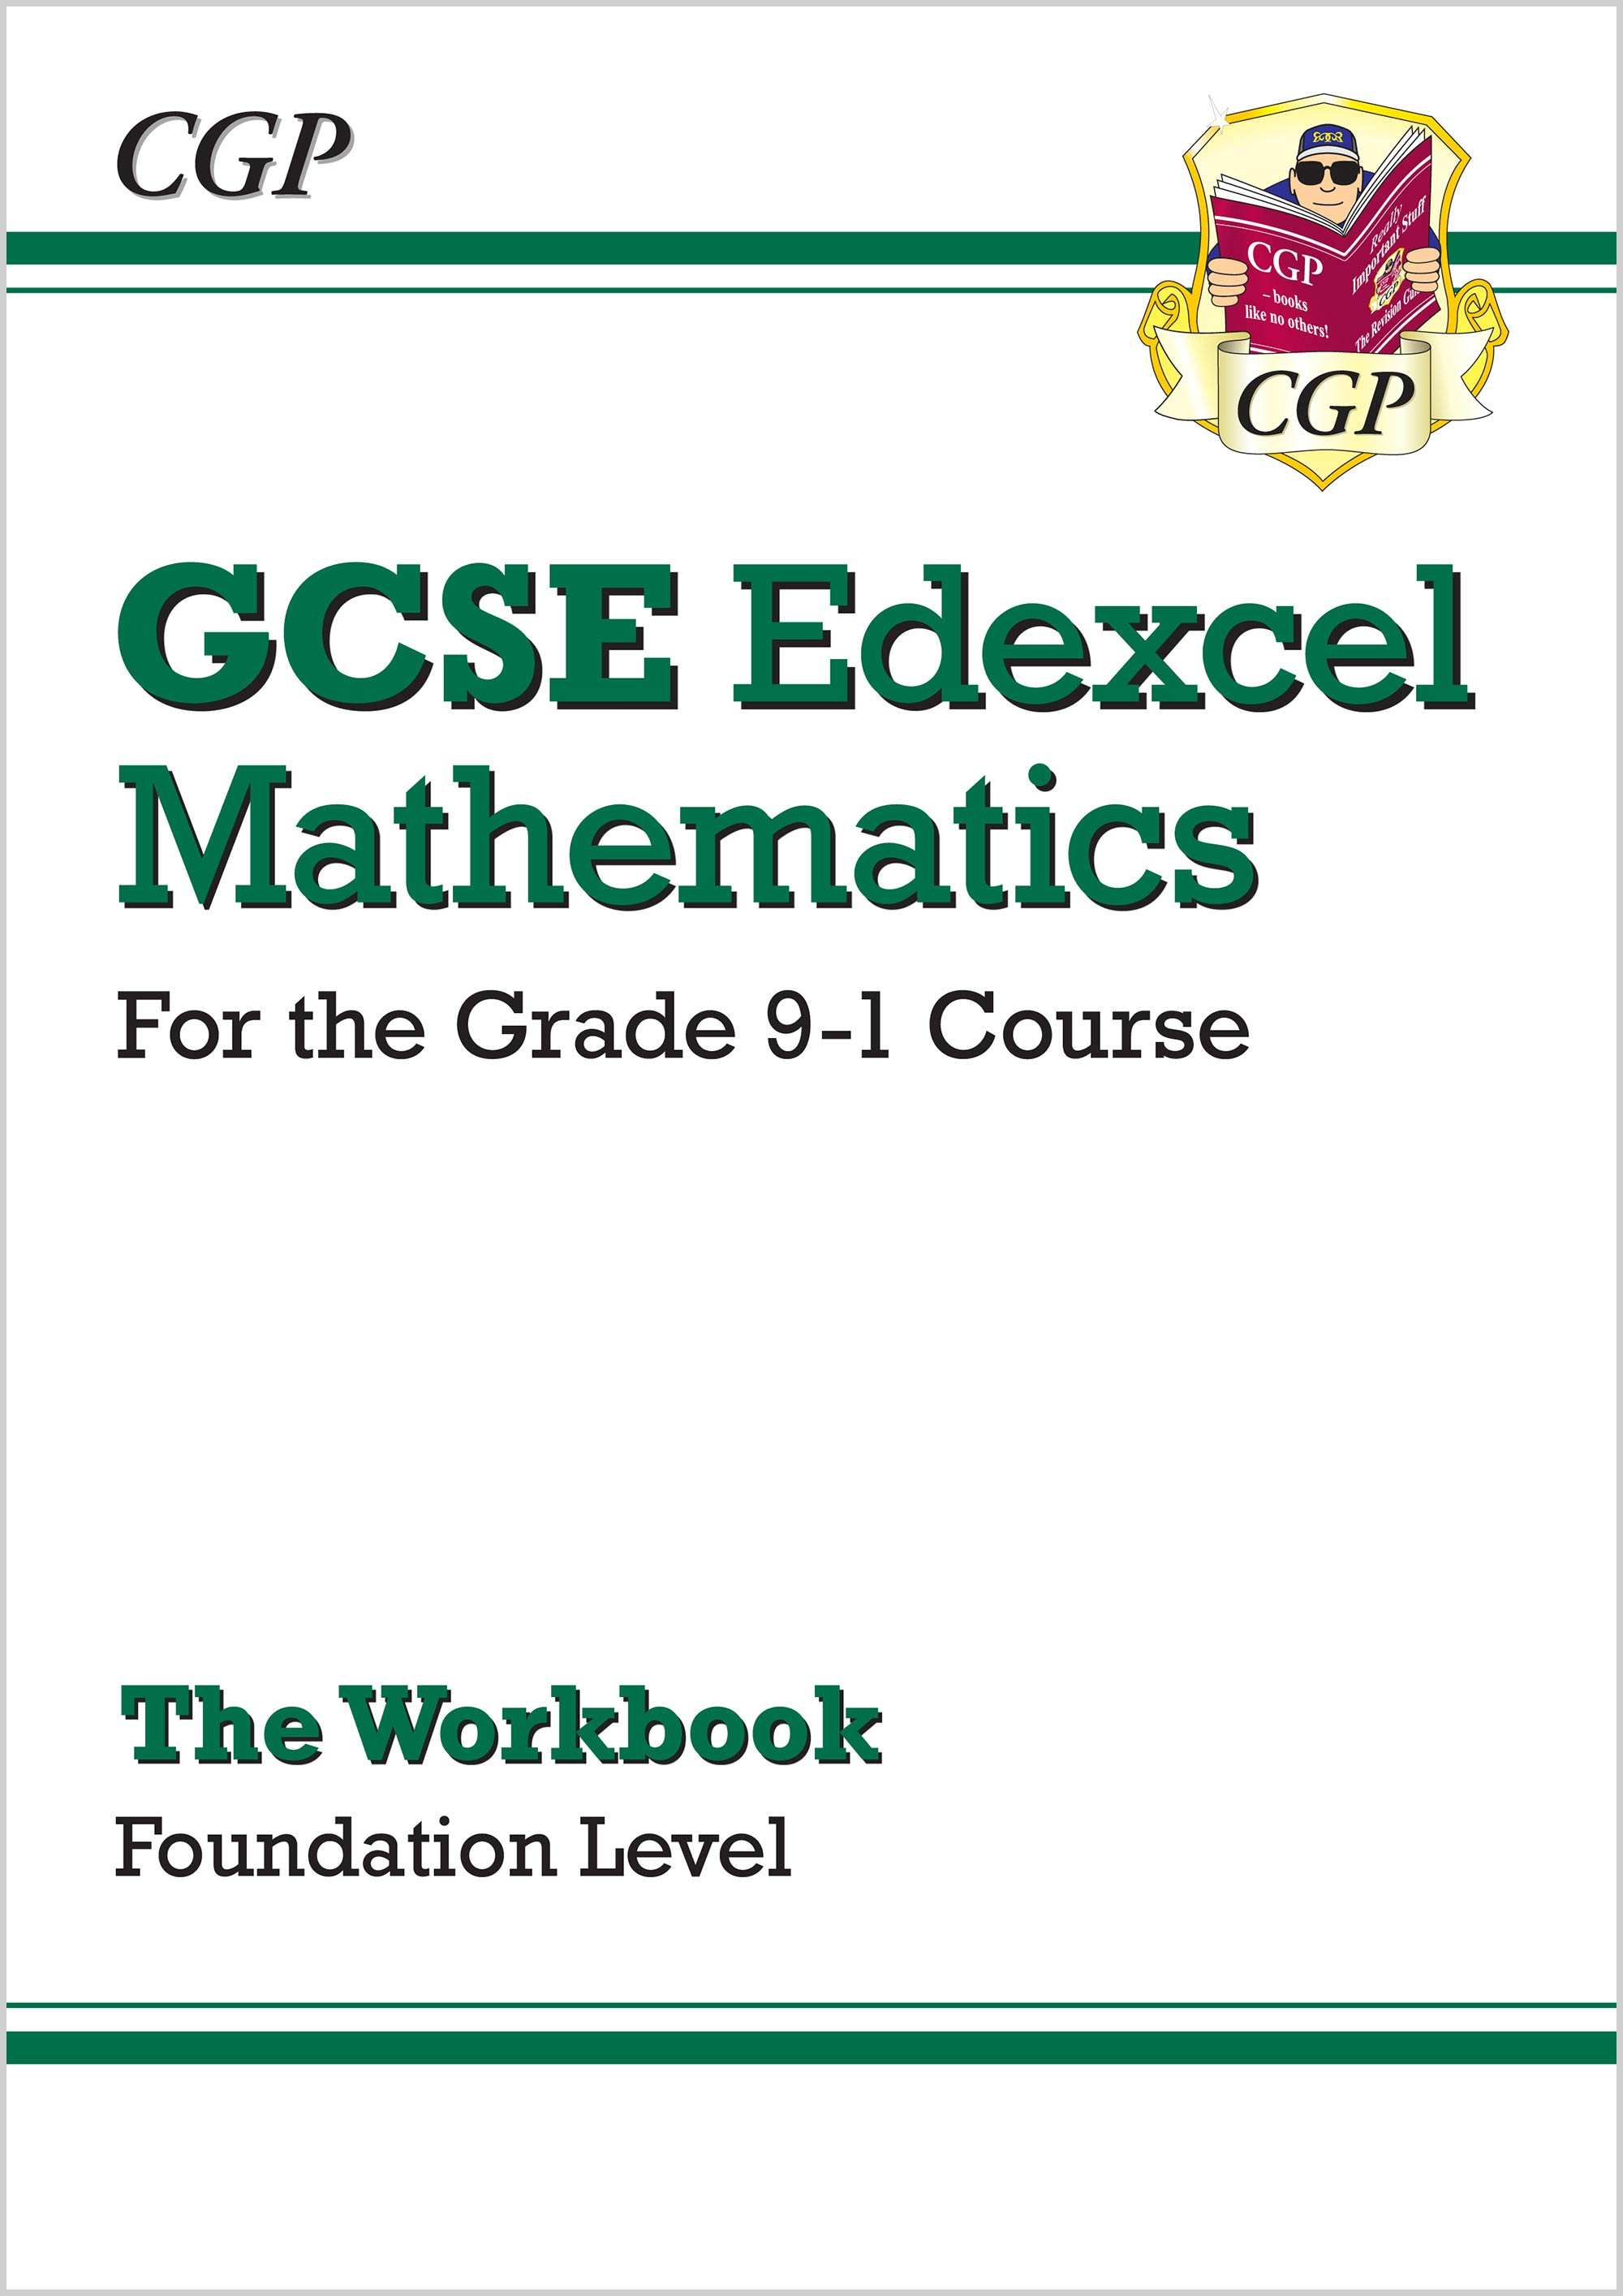 MXFW46 - GCSE Maths Edexcel Workbook: Foundation - for the Grade 9-1 Course